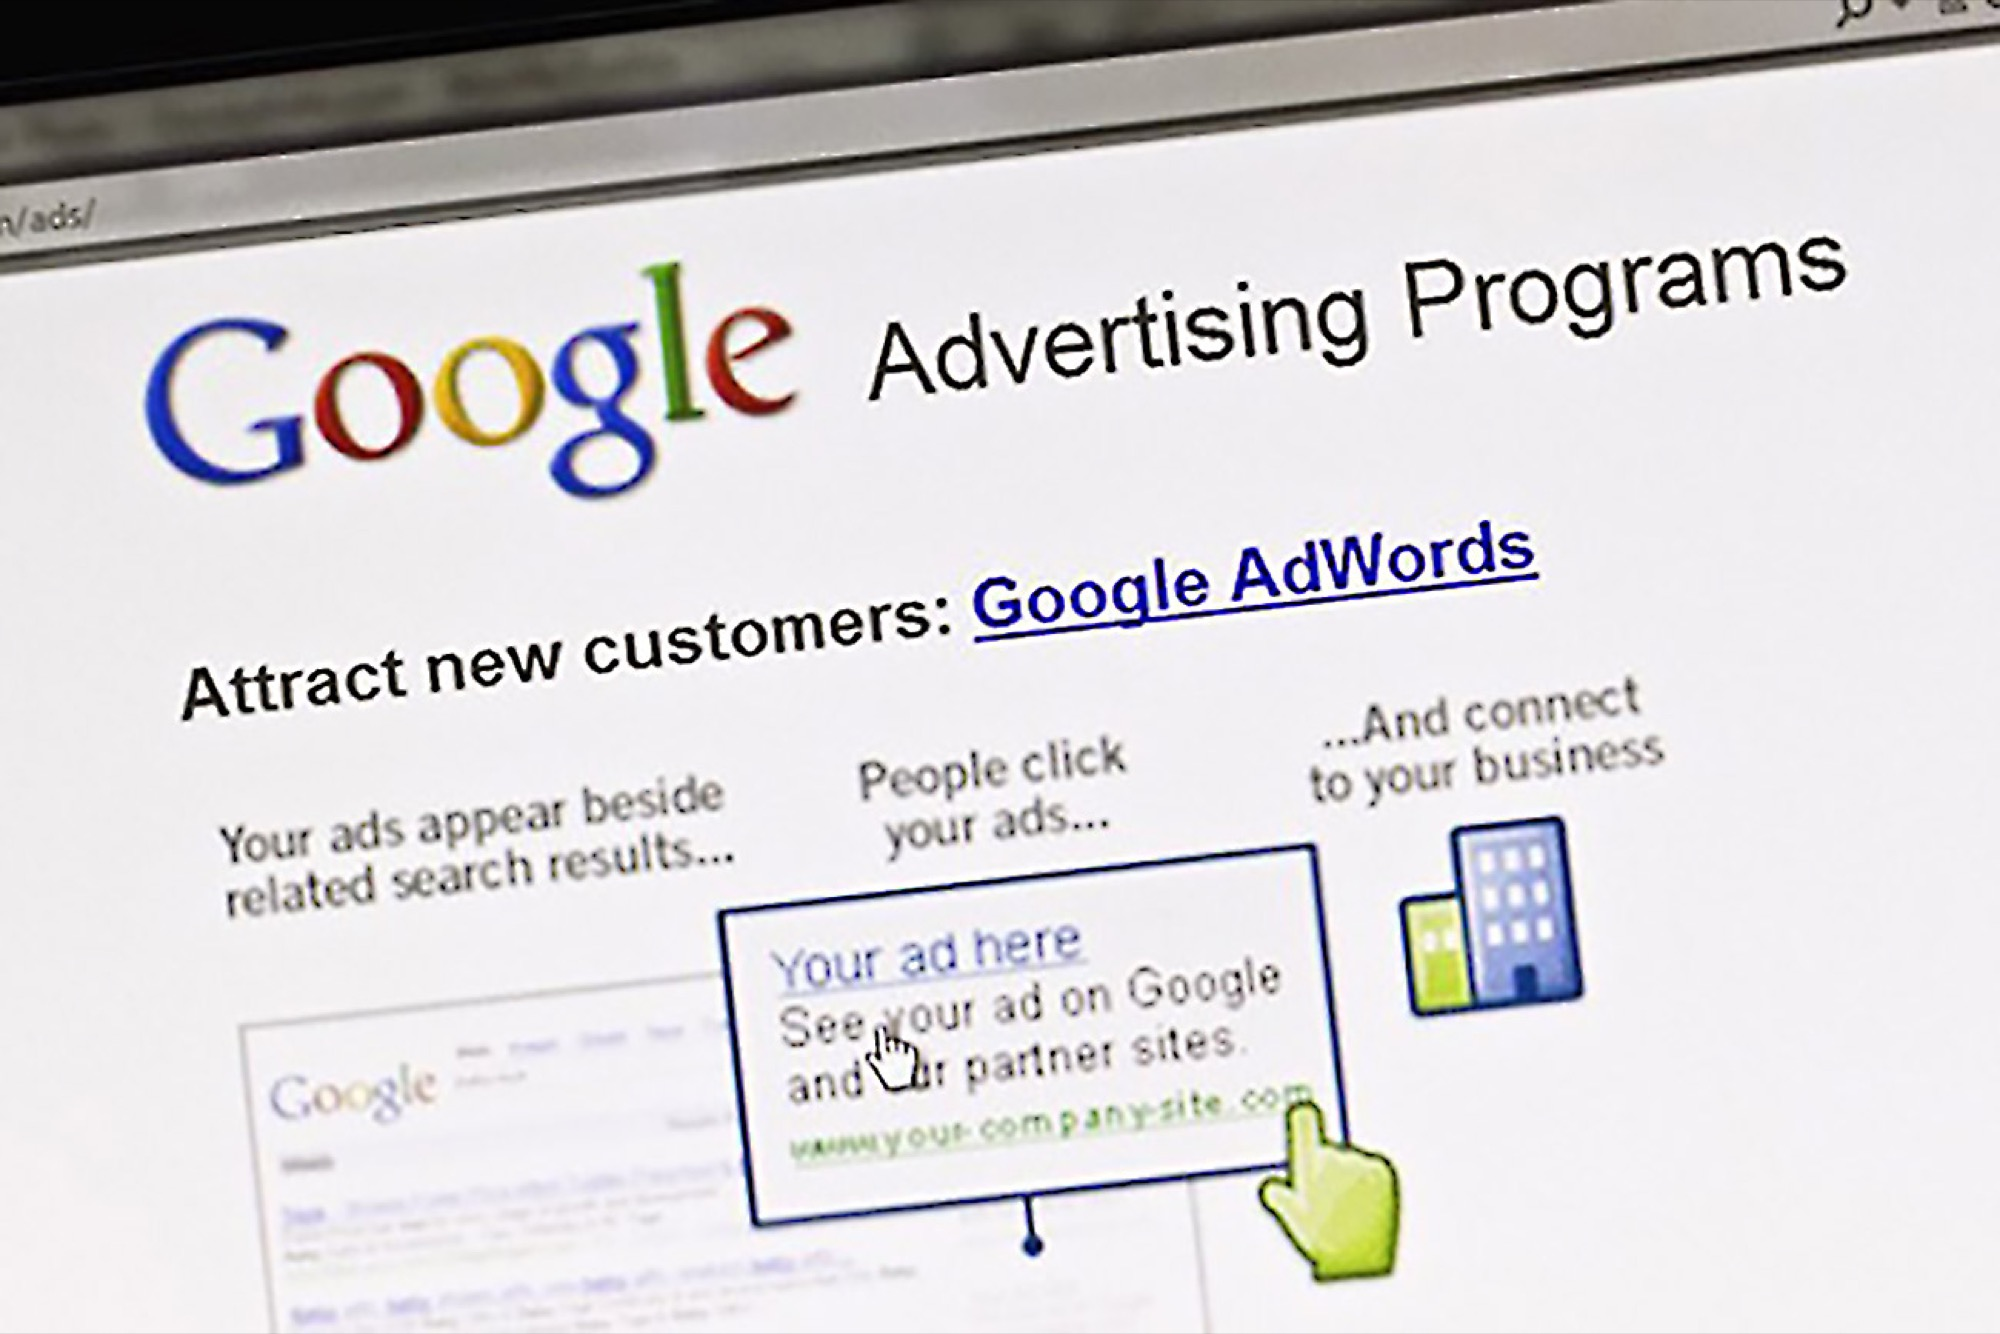 Google Adwords Keywords Find The Most Profitable Keywords For Your Google Adwords Campaign